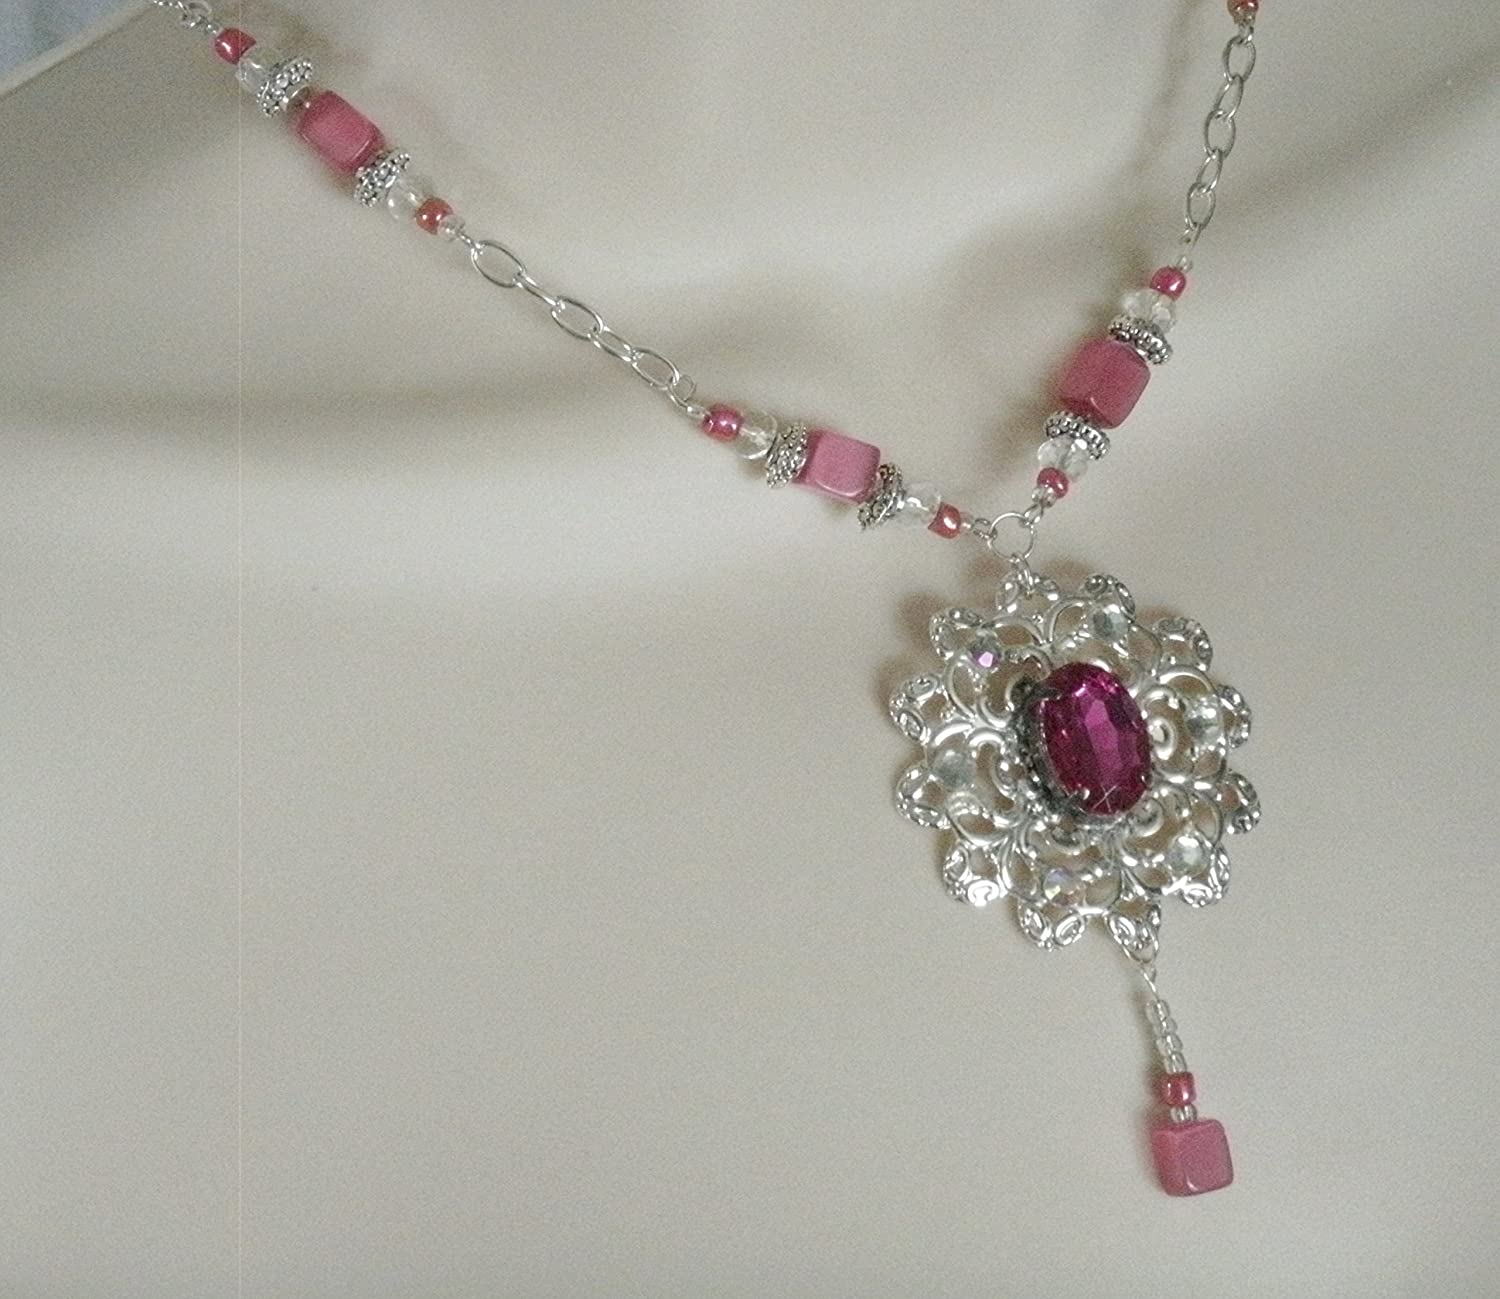 Pink Necklace handmade jewelry nouveau victorian edwardian art Easy-to-use A surprise price is realized